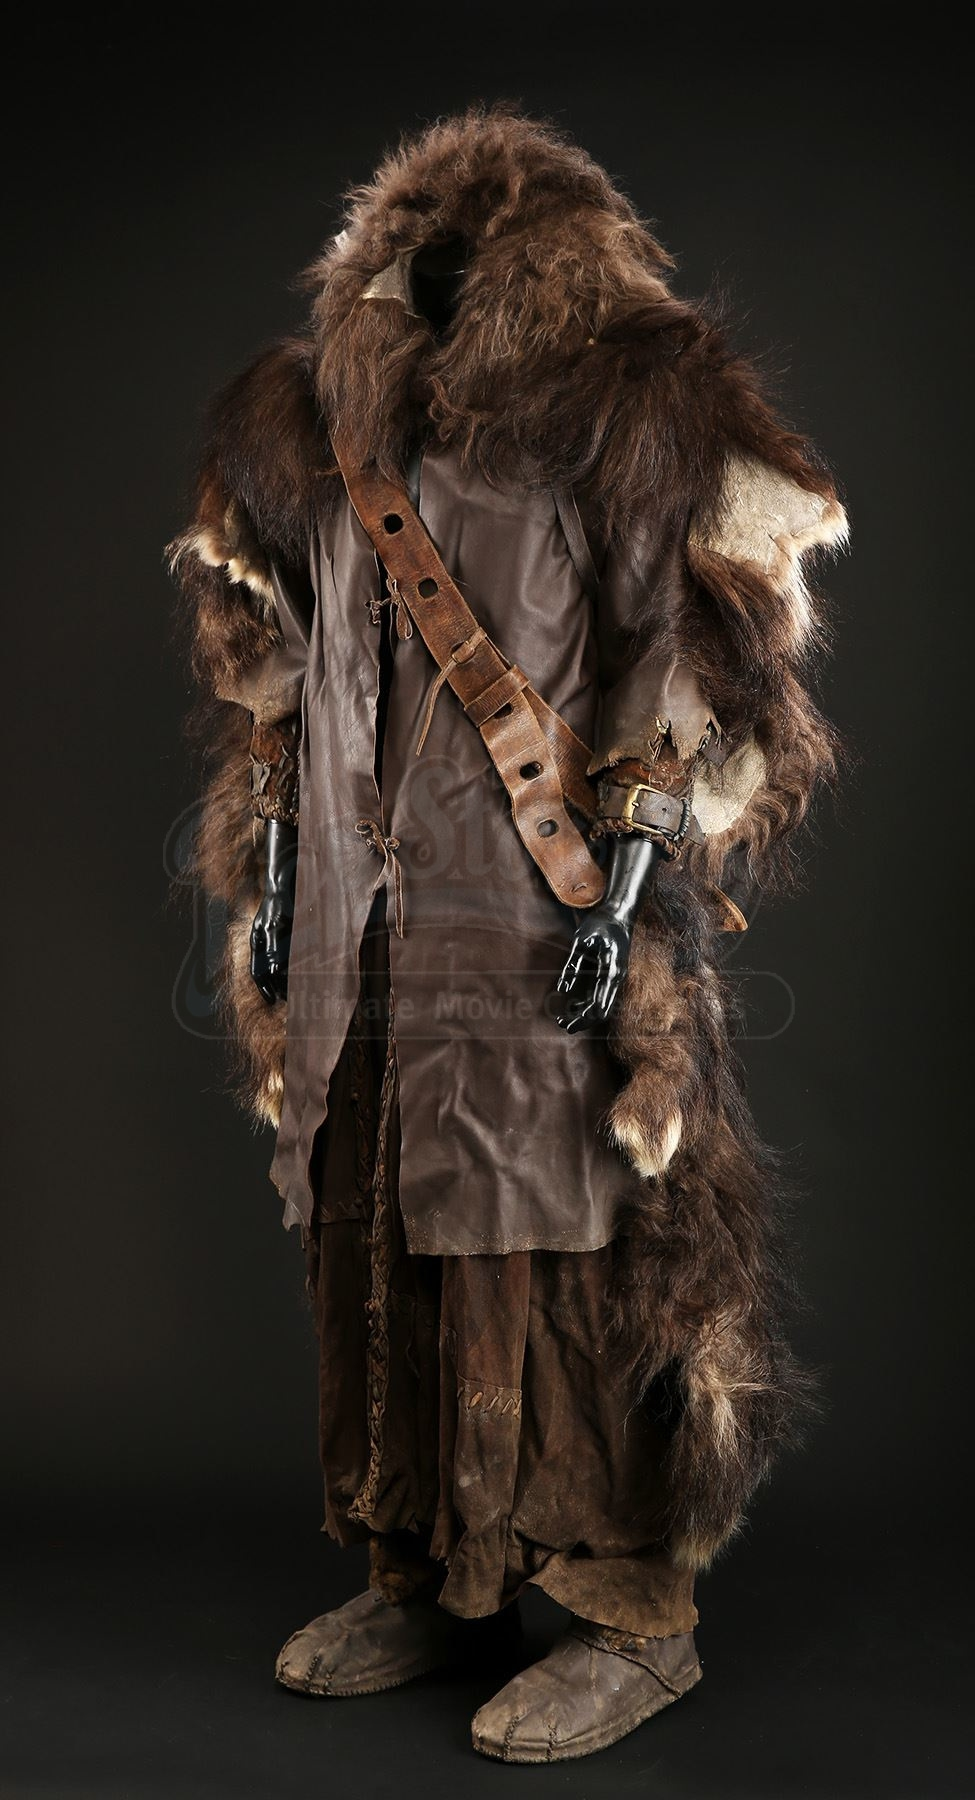 Is It Just Me, Or Is Tusk A Really Great Example Of Body ... |Tusk Movie Costume